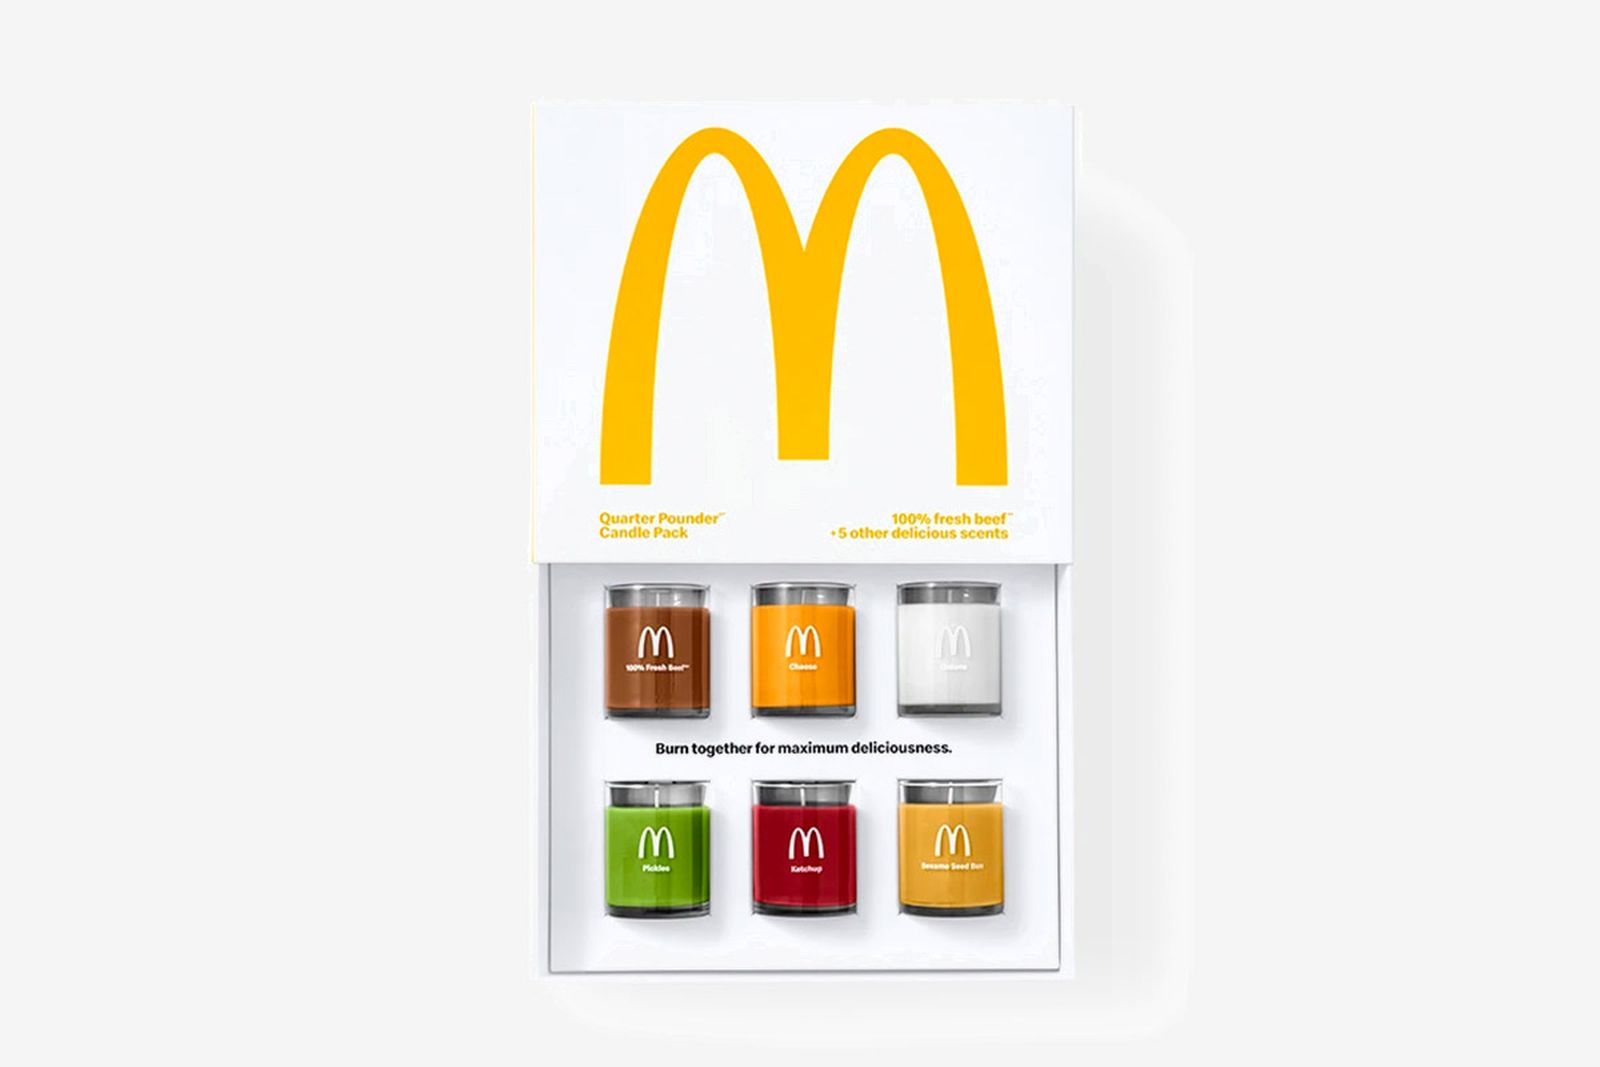 mcdonalds-candles-pack-01